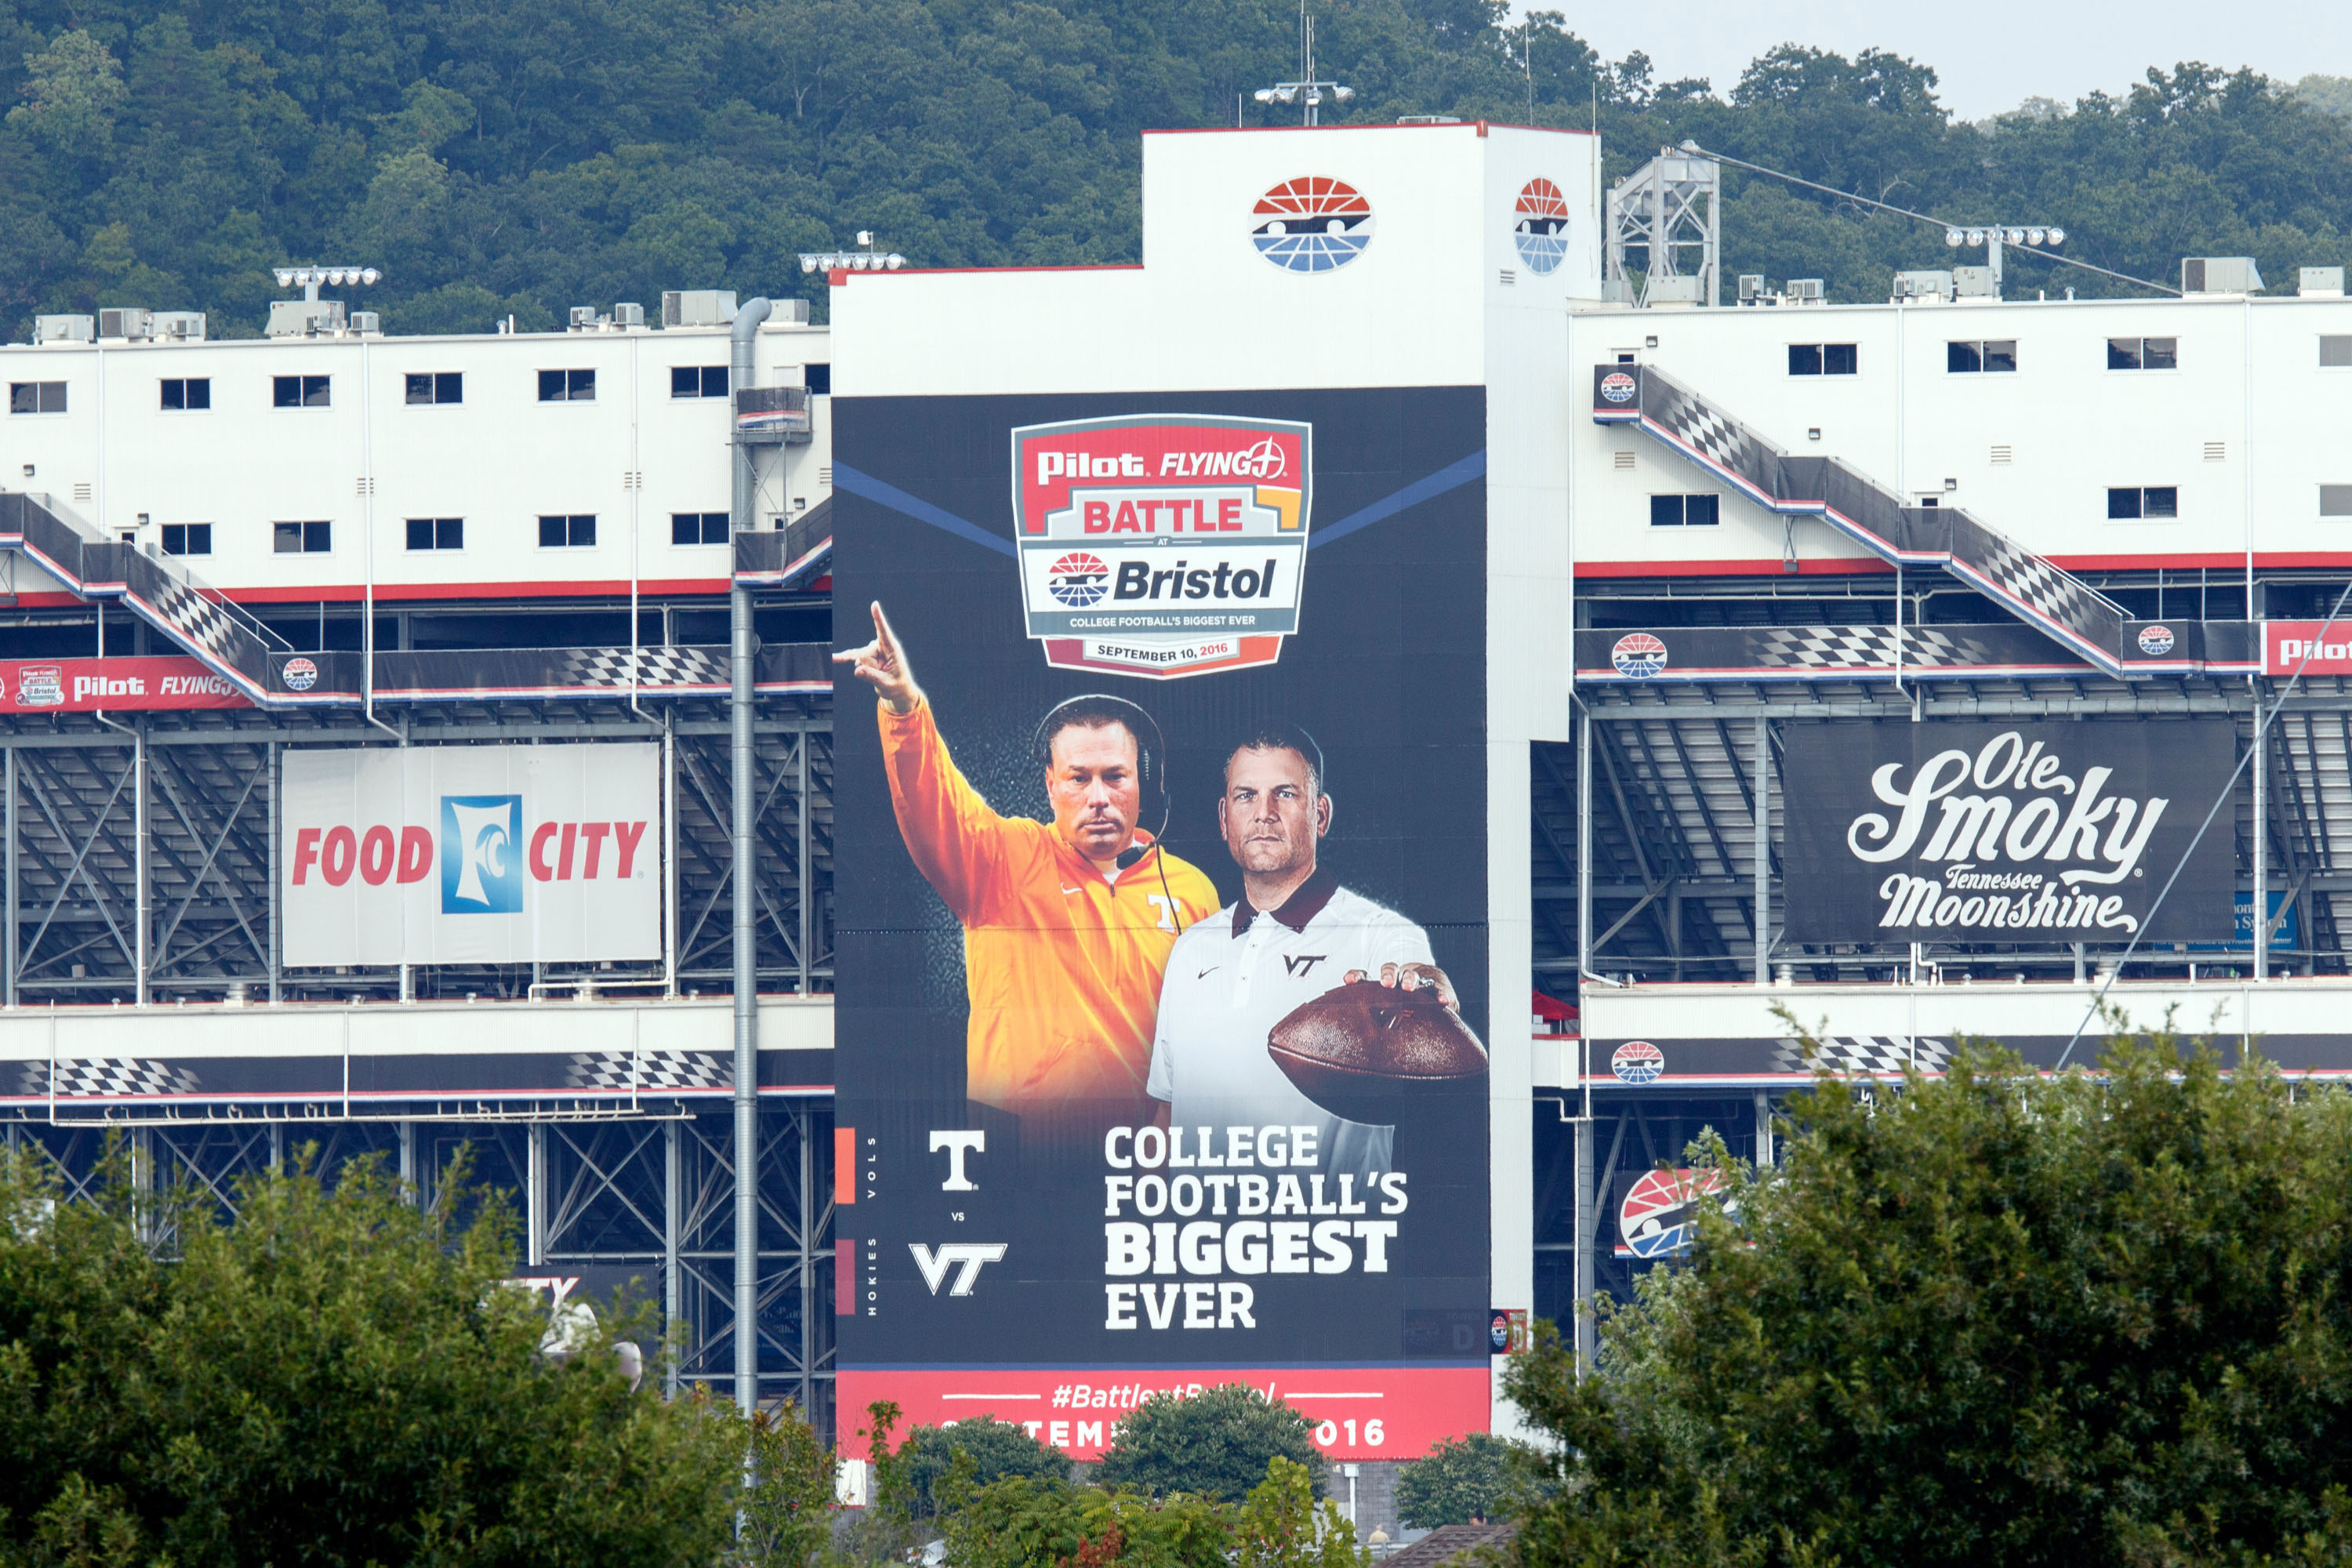 Tennessee Virginia Tech Fetch Big Payouts For Battle At